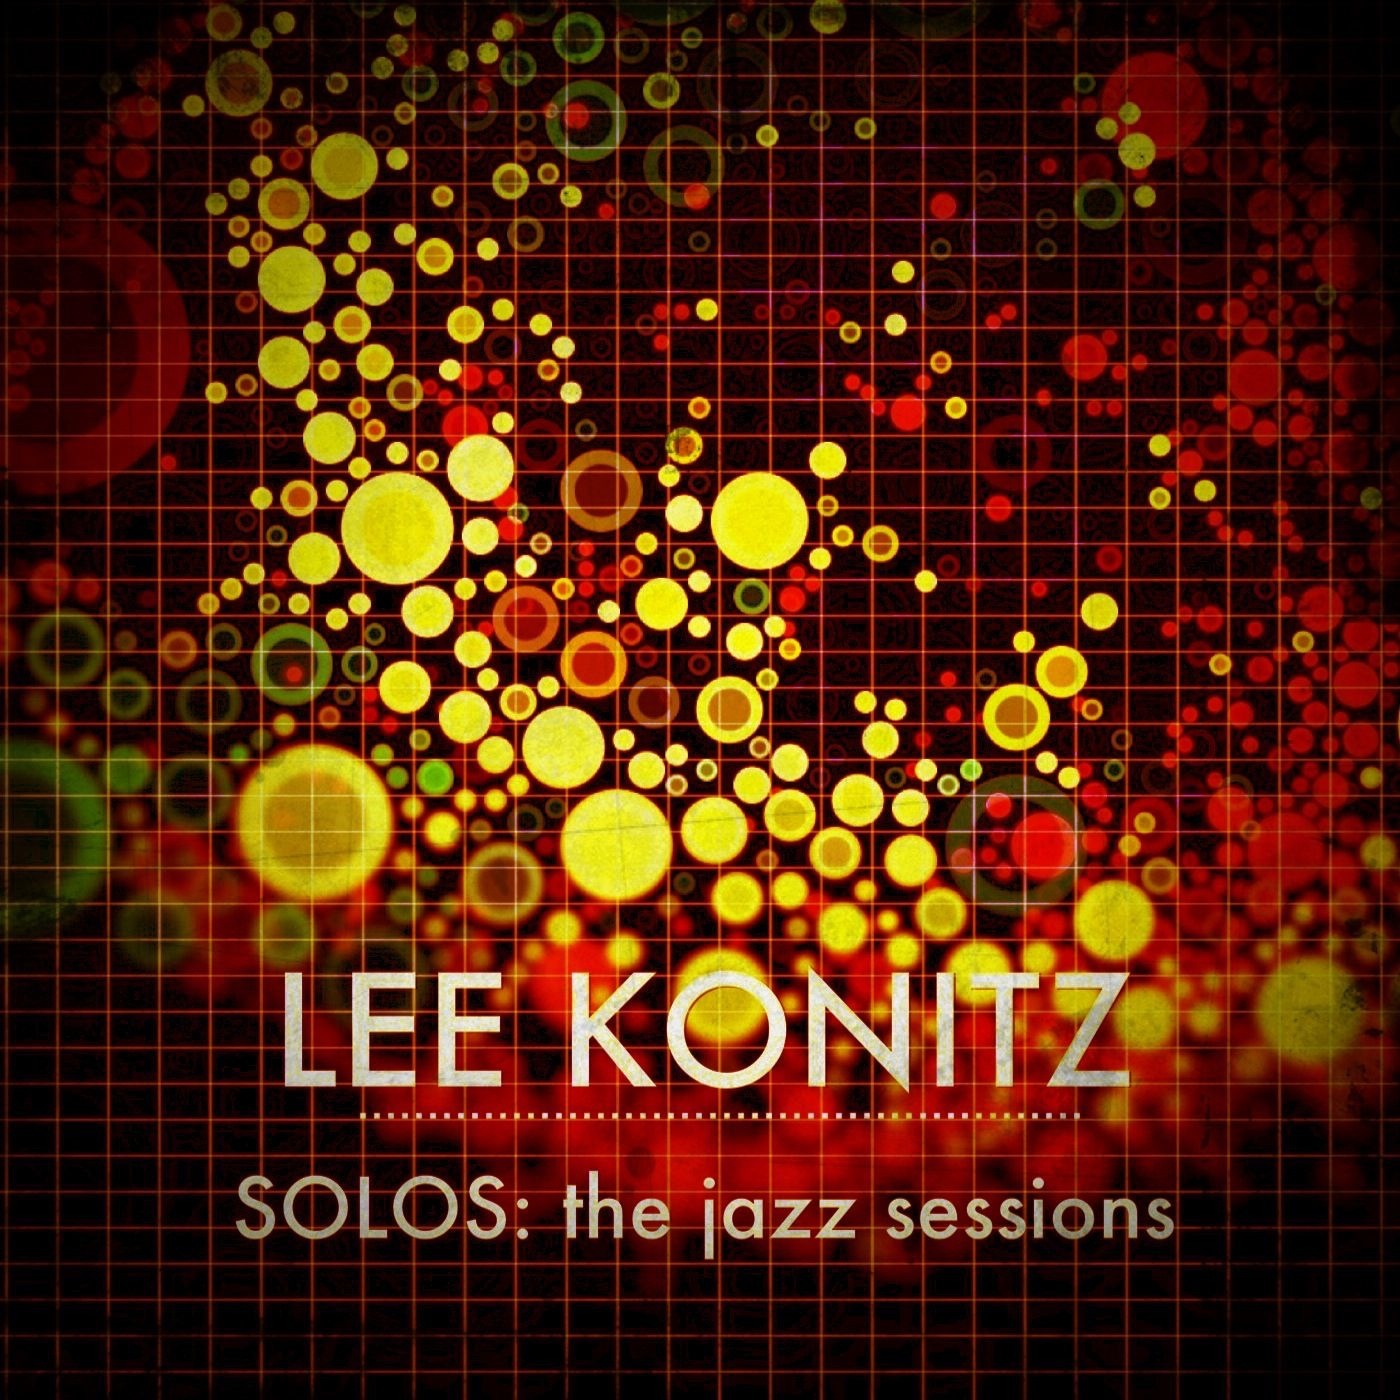 SOLOS: The Jazz Sessions (Lee Konitz)